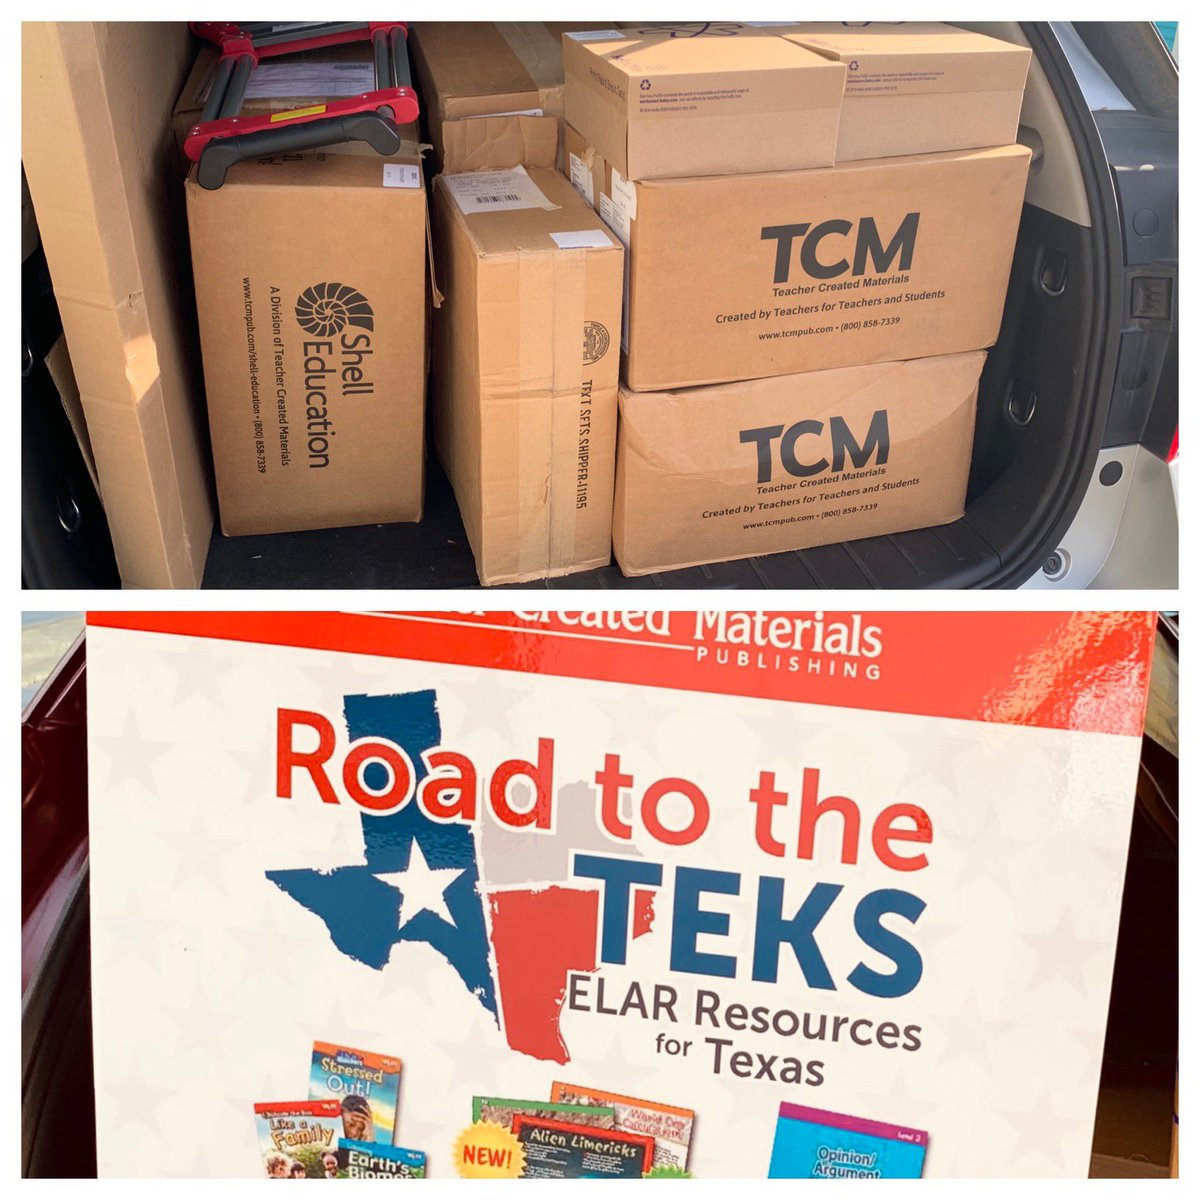 Ready for a great day of learning with @tcmpub @MsCarltonsclass @Amber_TCM in @ZapataCoISD, plus our friends from @unitedisd #RoadtotheTEKS #ELAR #literacy #mytcm #letsdothis<br>http://pic.twitter.com/itShqWPQrL